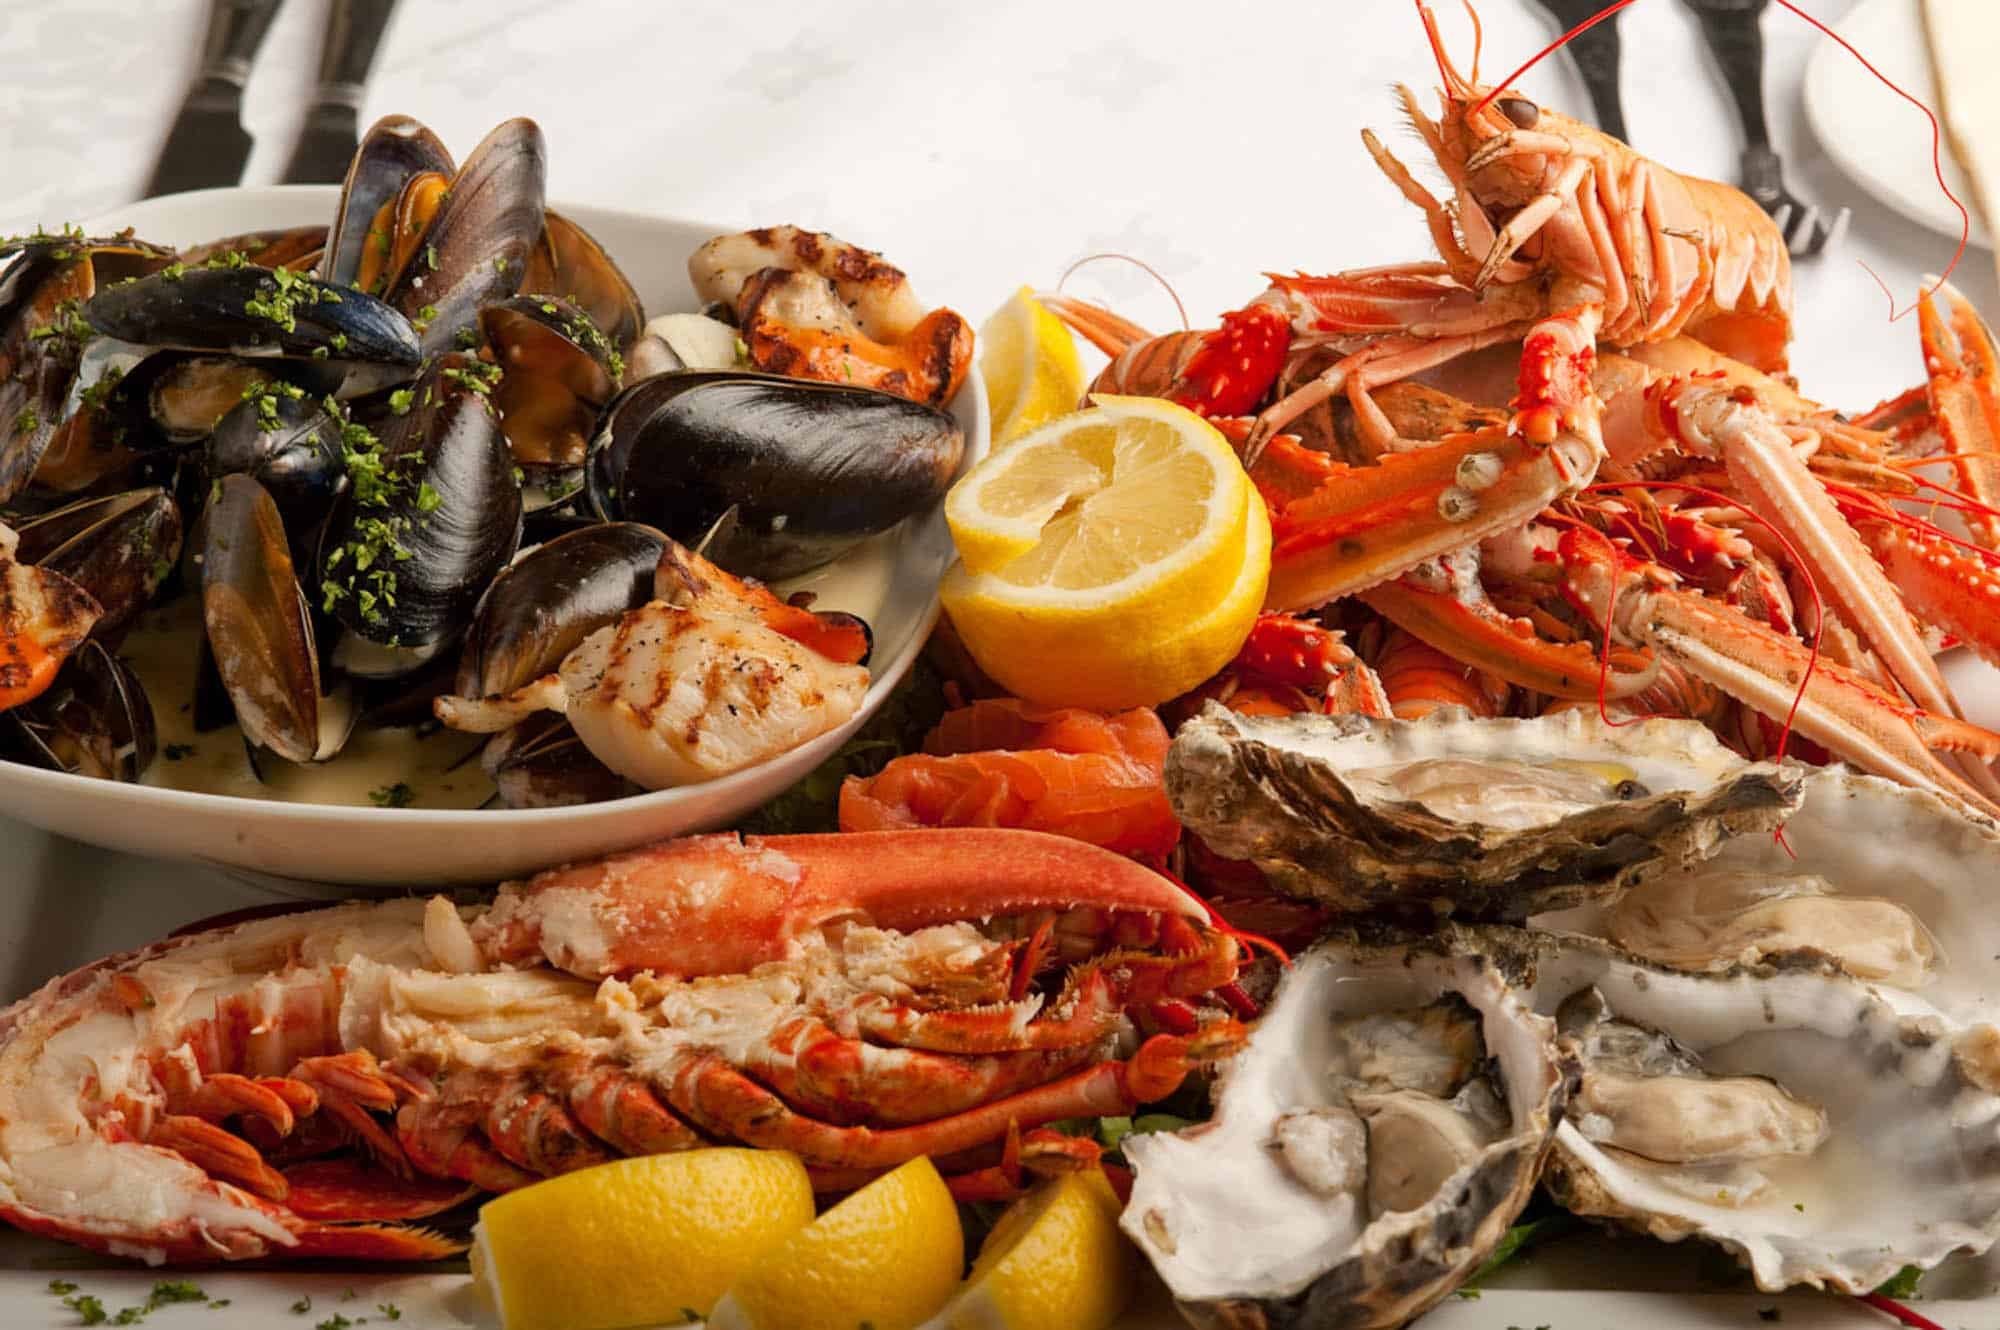 http://www.gentlemansgazette.com/wp-content/uploads/2015/01/Theres-nothing-better-than-quality-seafood.jpg